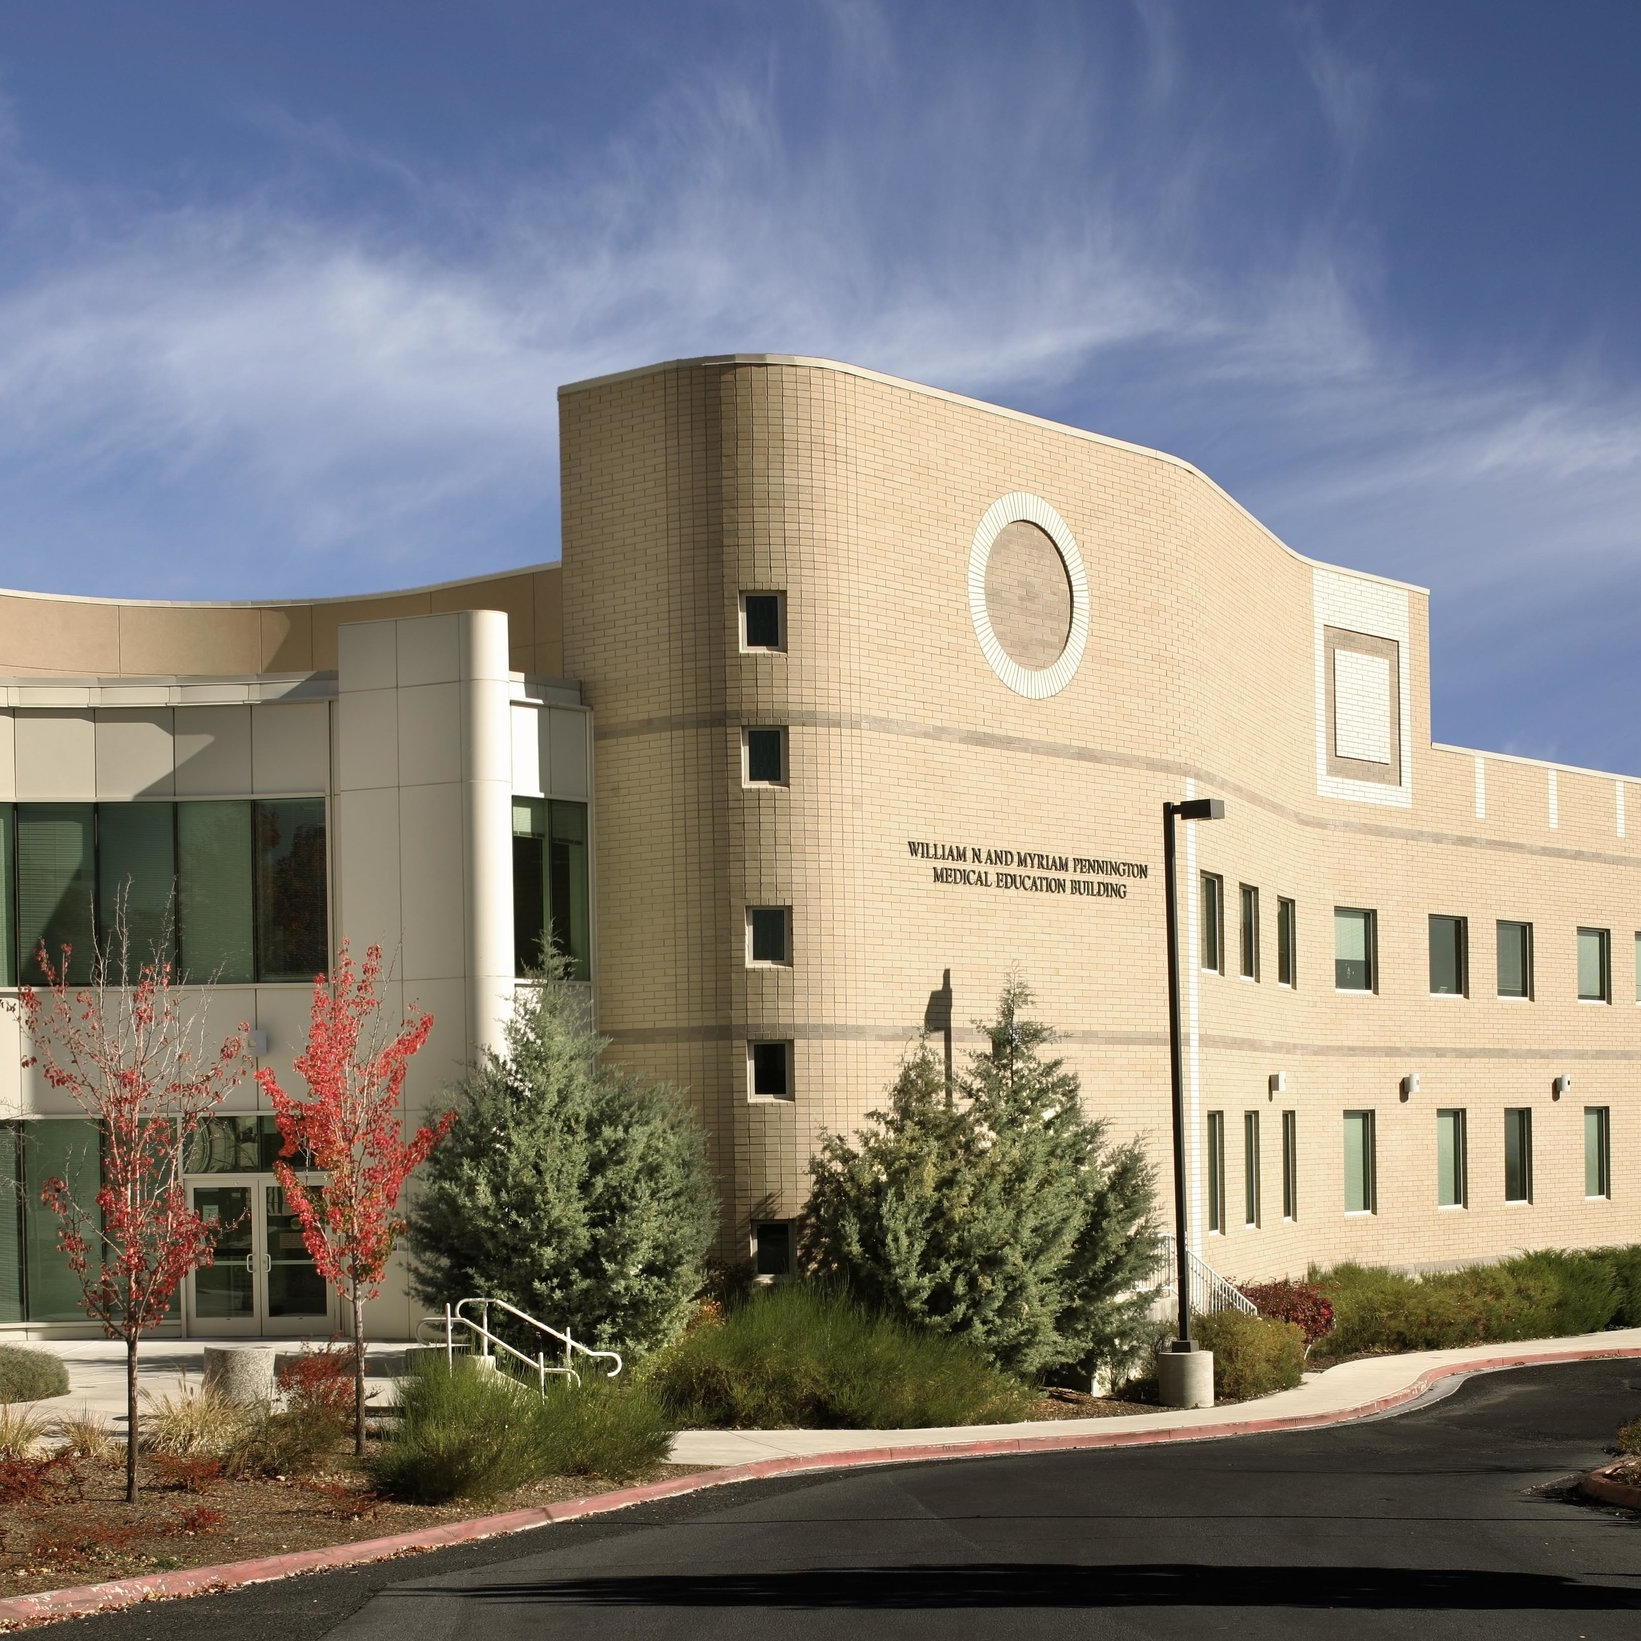 university of nevada reno (uNR) pennington medical education library and medical center -